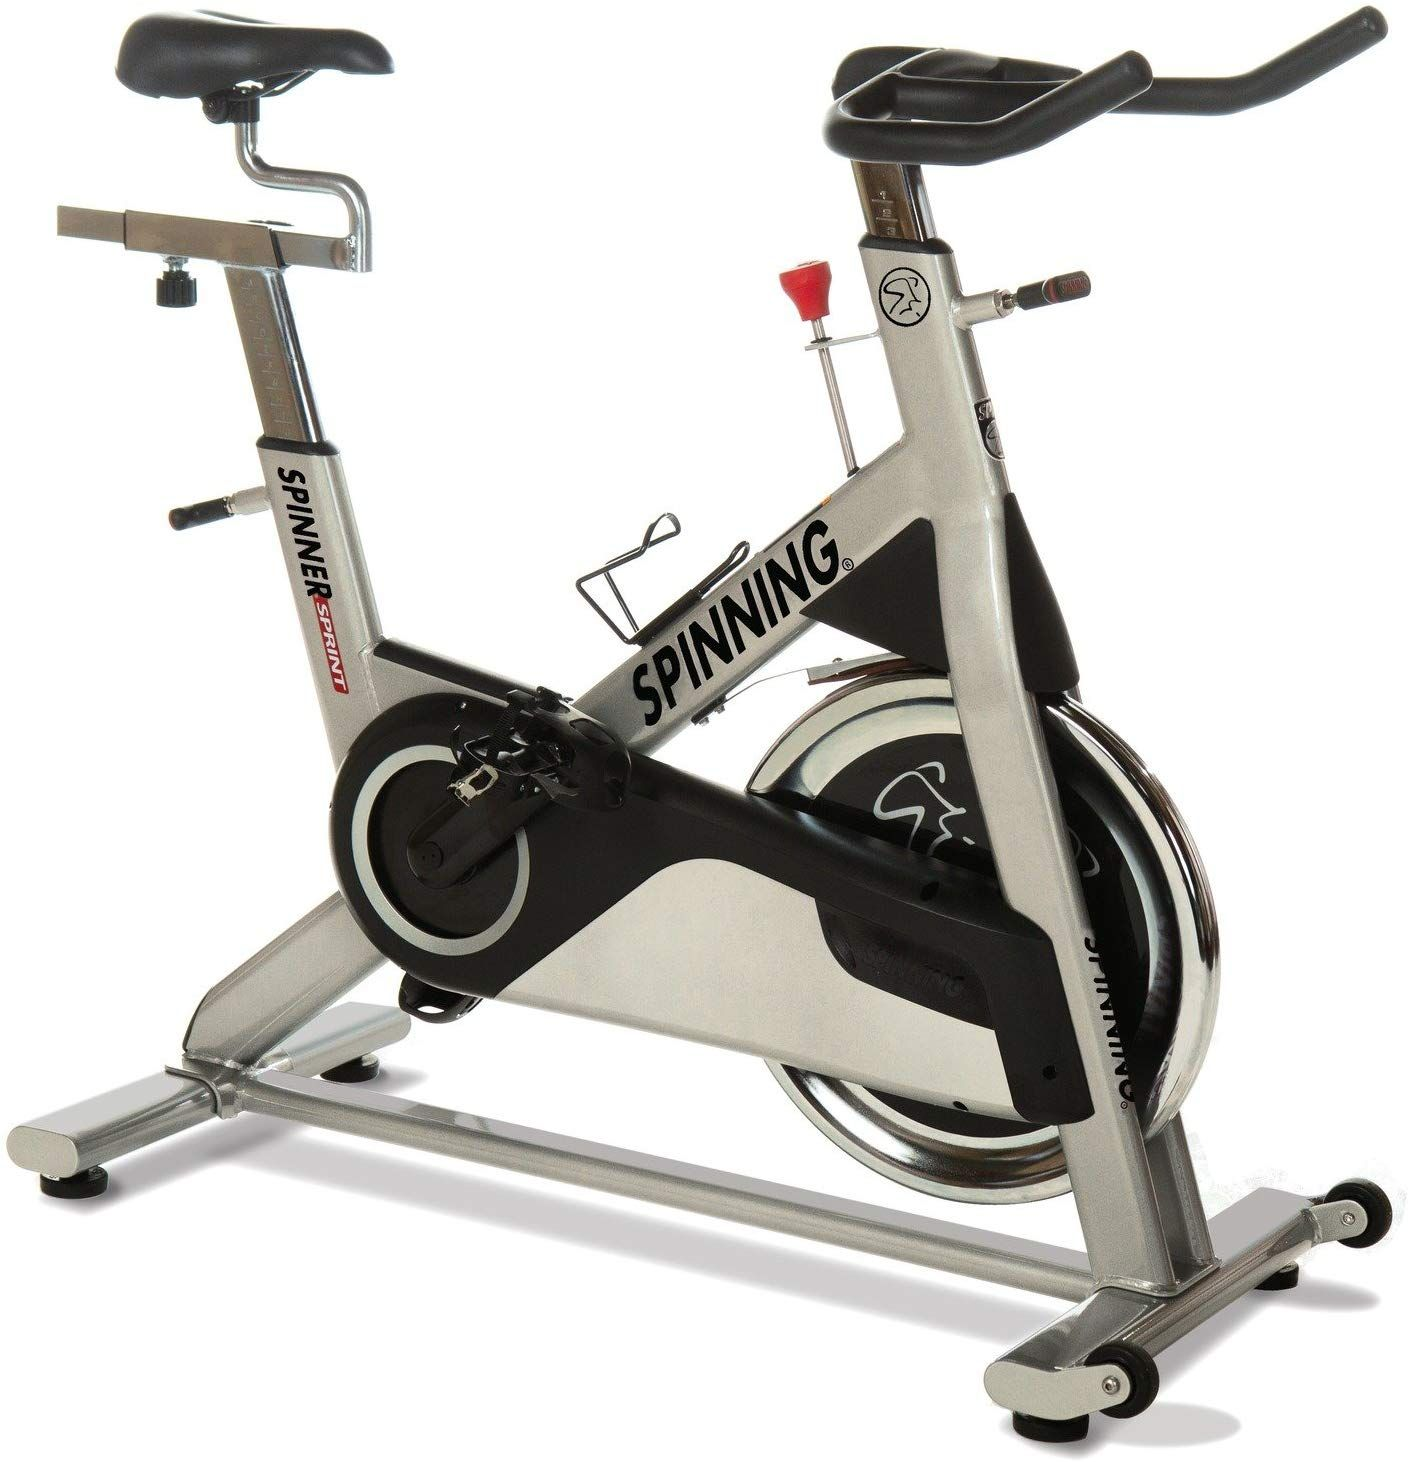 Spinner Sprint Premium Authentic Indoor Cycle Spin Bike With